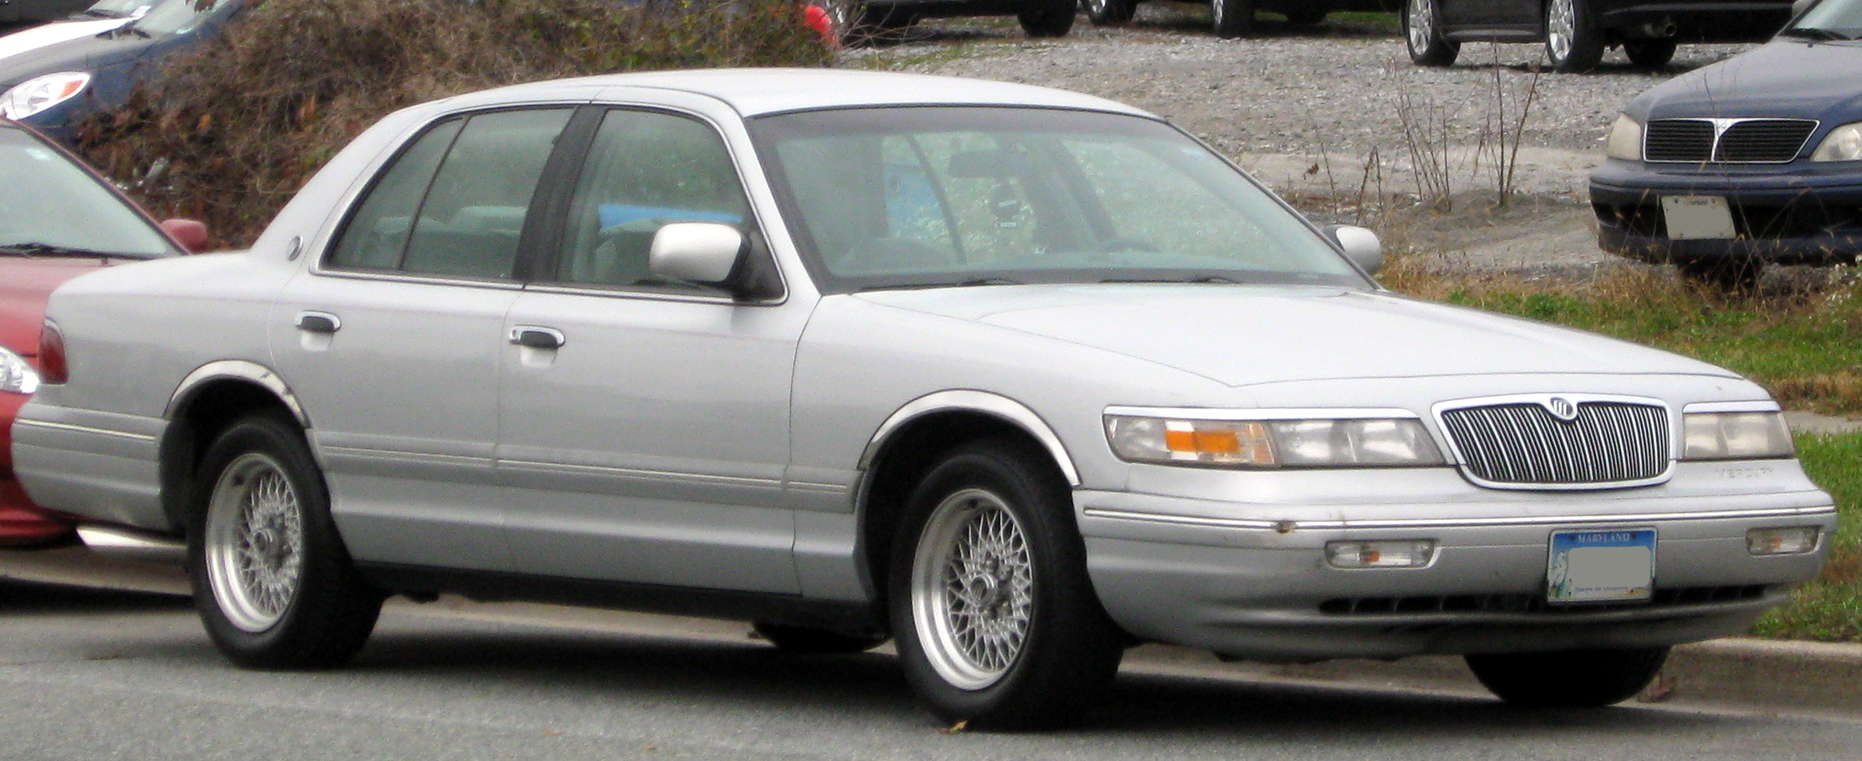 Mercury Grand Marquis #1